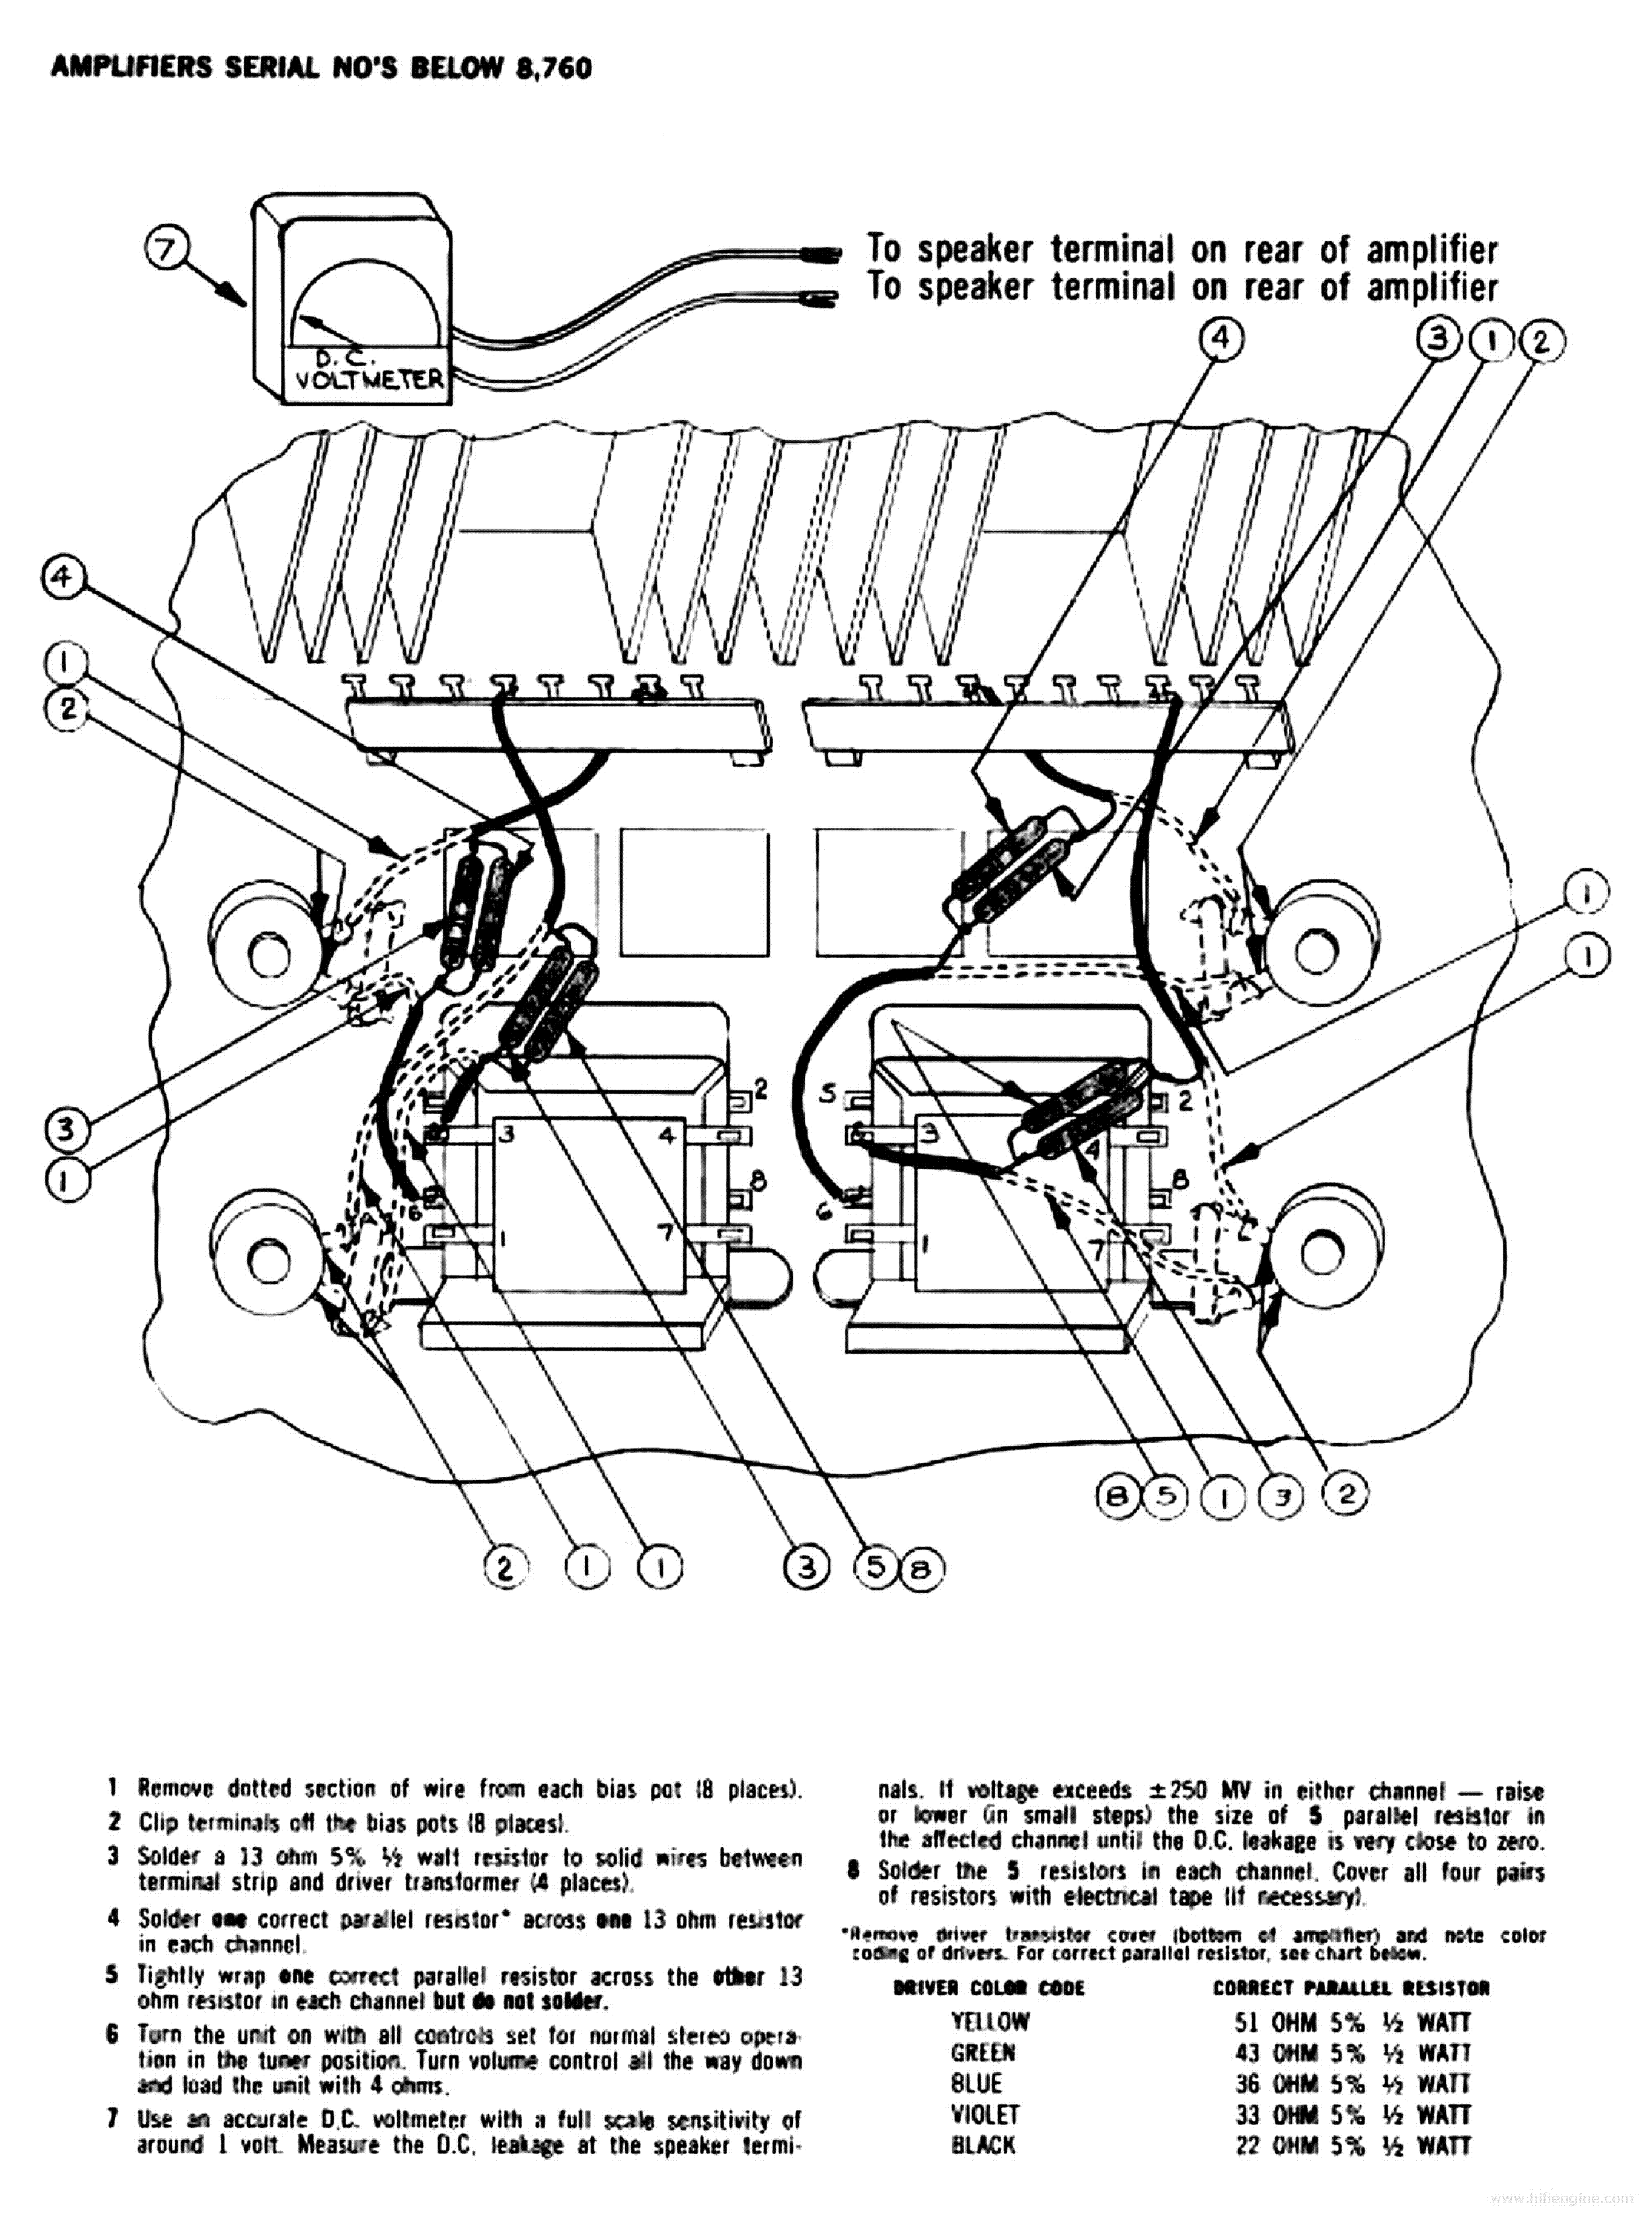 ACOUSTIC-RESEARCH AMPLIFIER RECEIVER BULLETIN Service